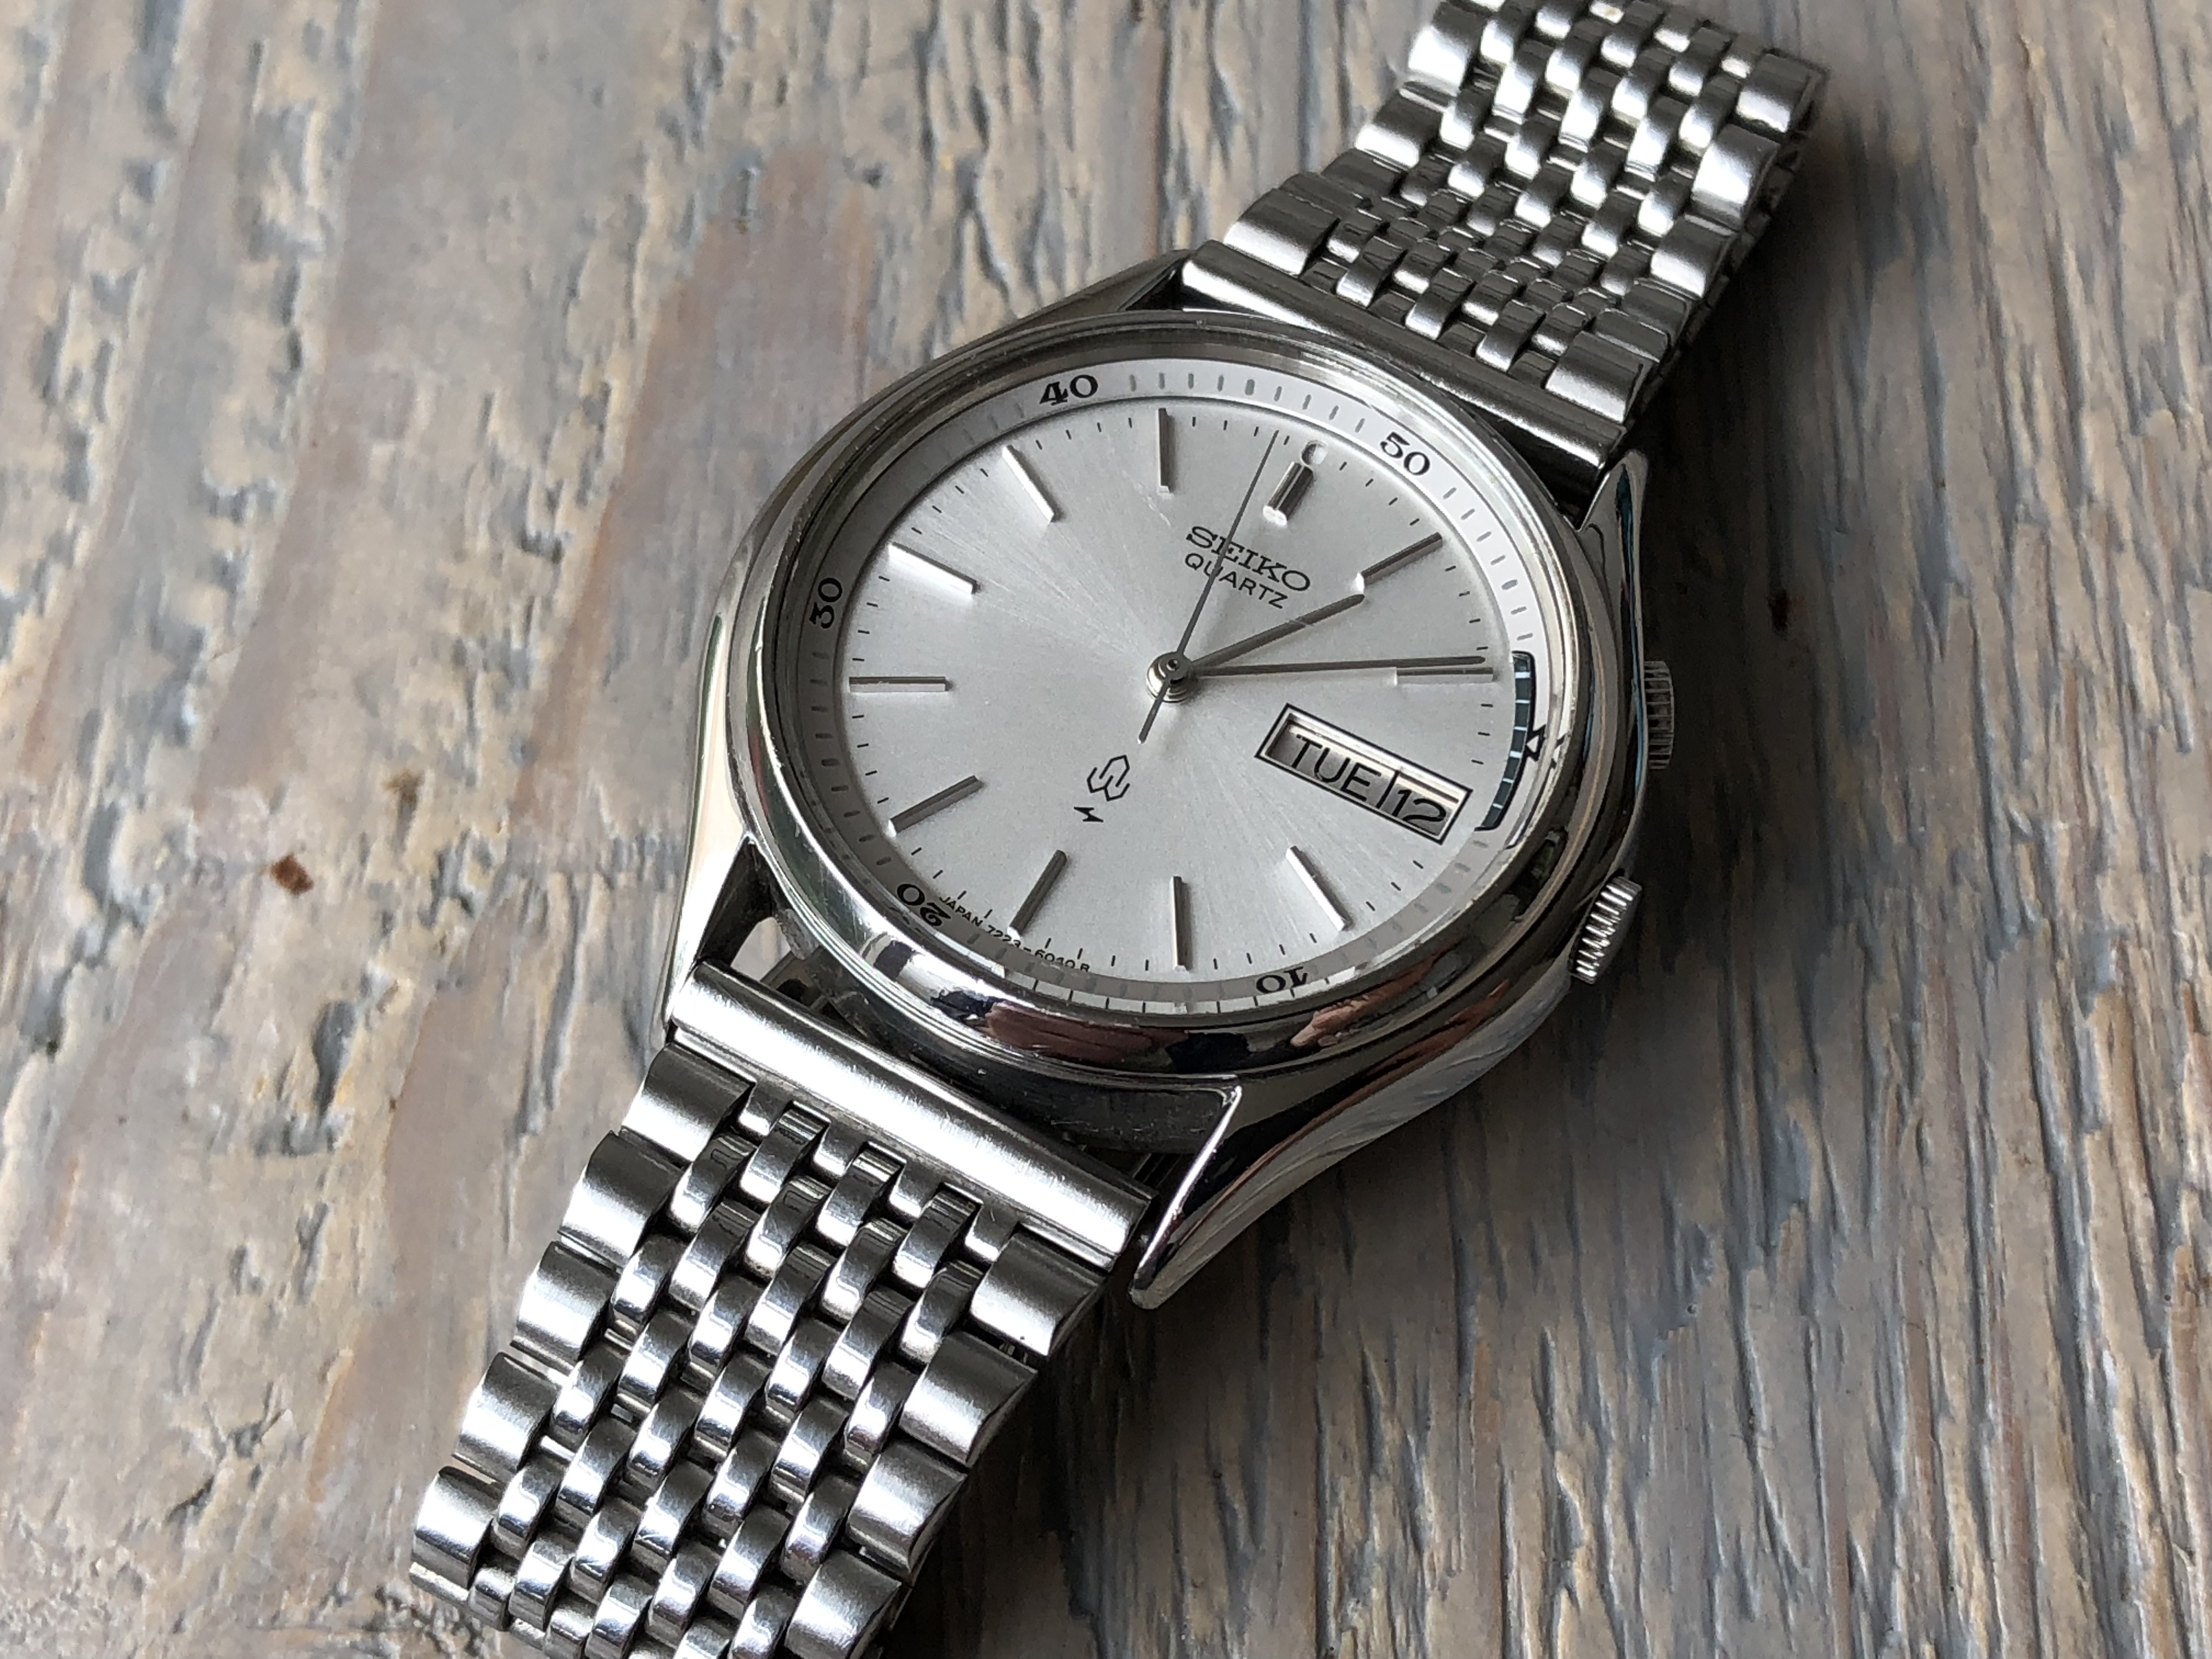 Seiko Alarm Quartz 7223-6040 (Sold)